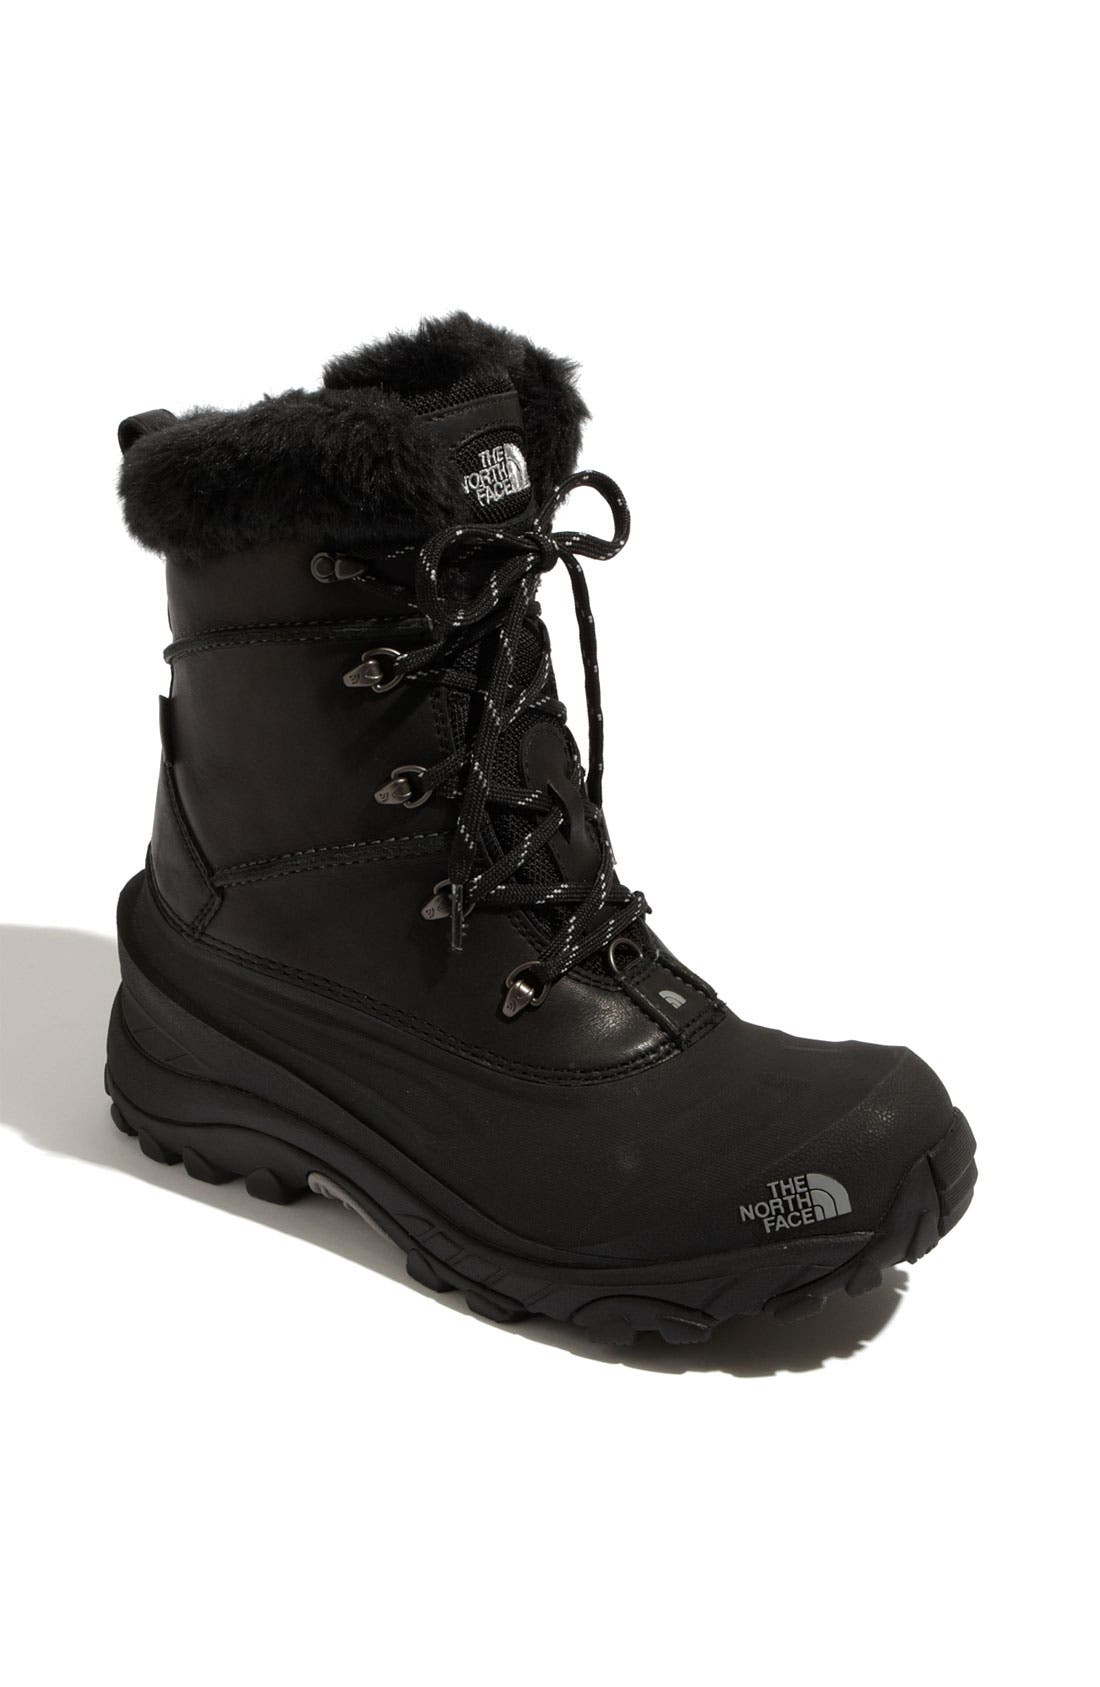 THE NORTH FACE,                             'McMurdo II' Boot,                             Main thumbnail 1, color,                             001